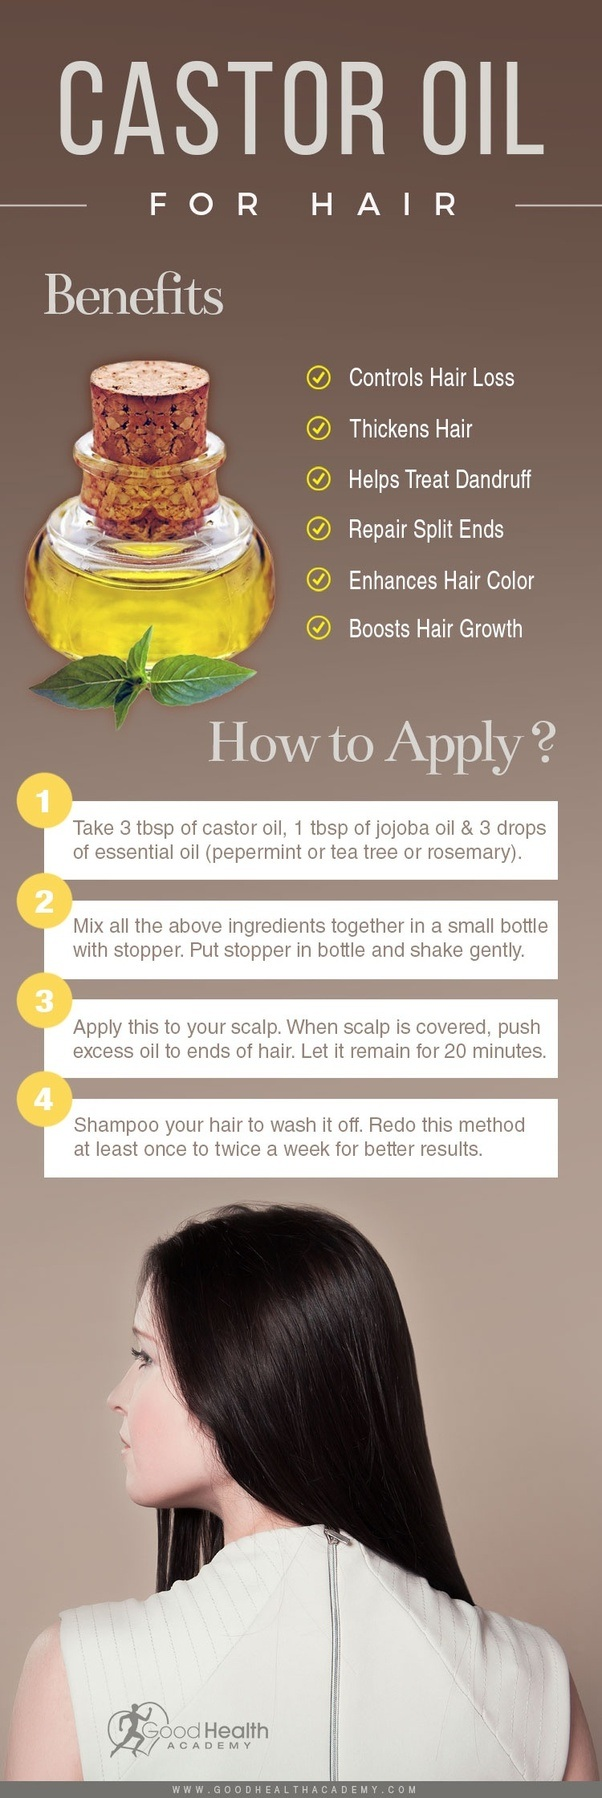 Mustard mask for hair growth - reviews and personal experience